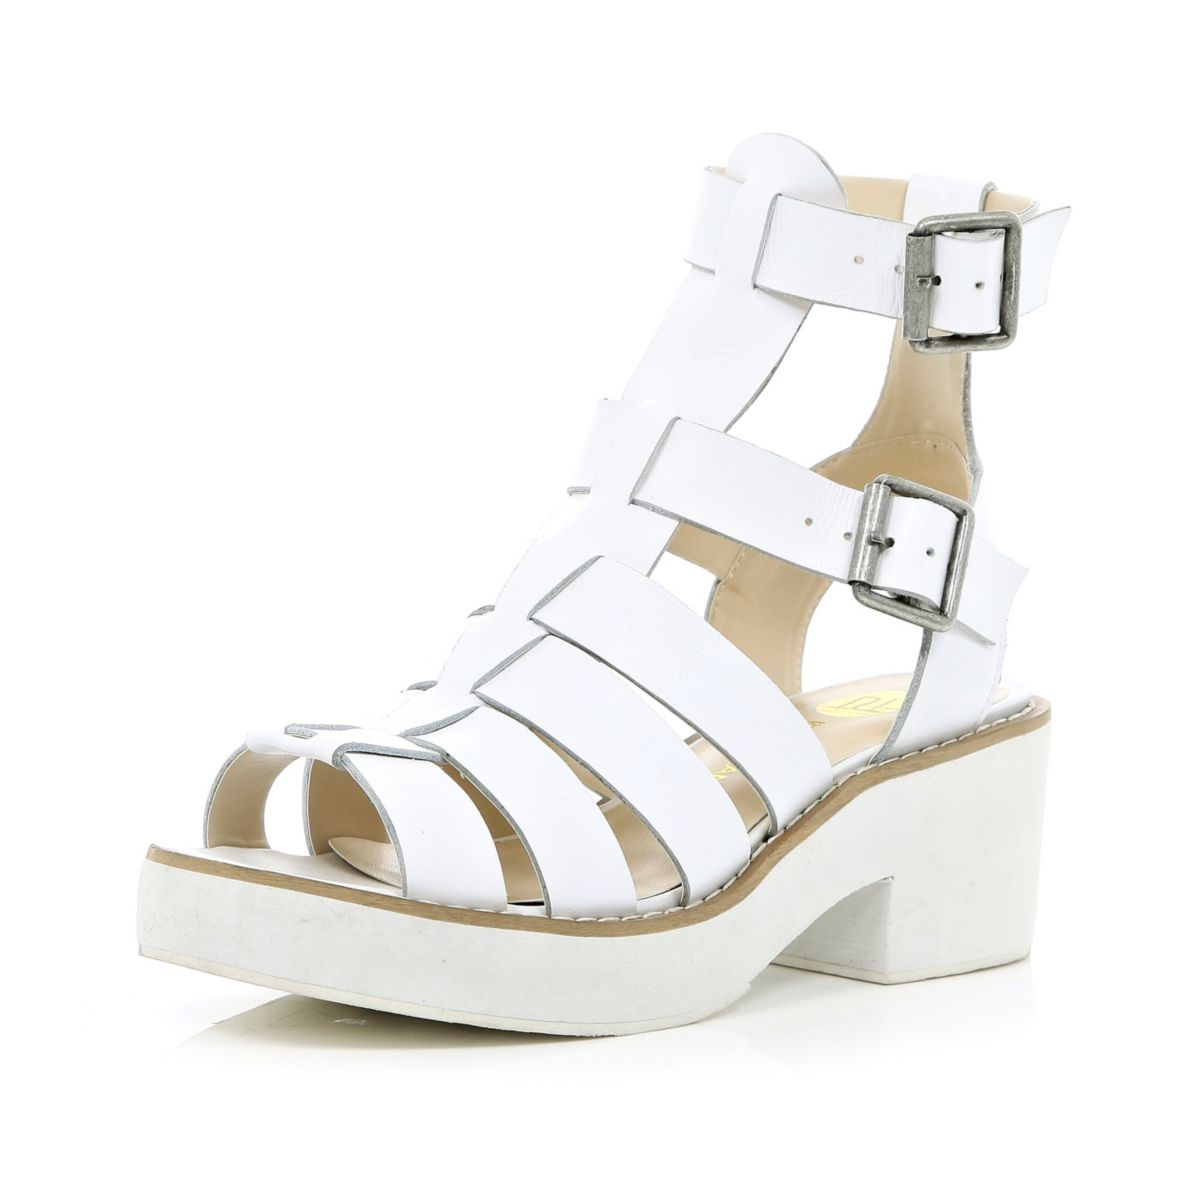 White block heel gladiator sandals - Shoes & Boots - Sale - women